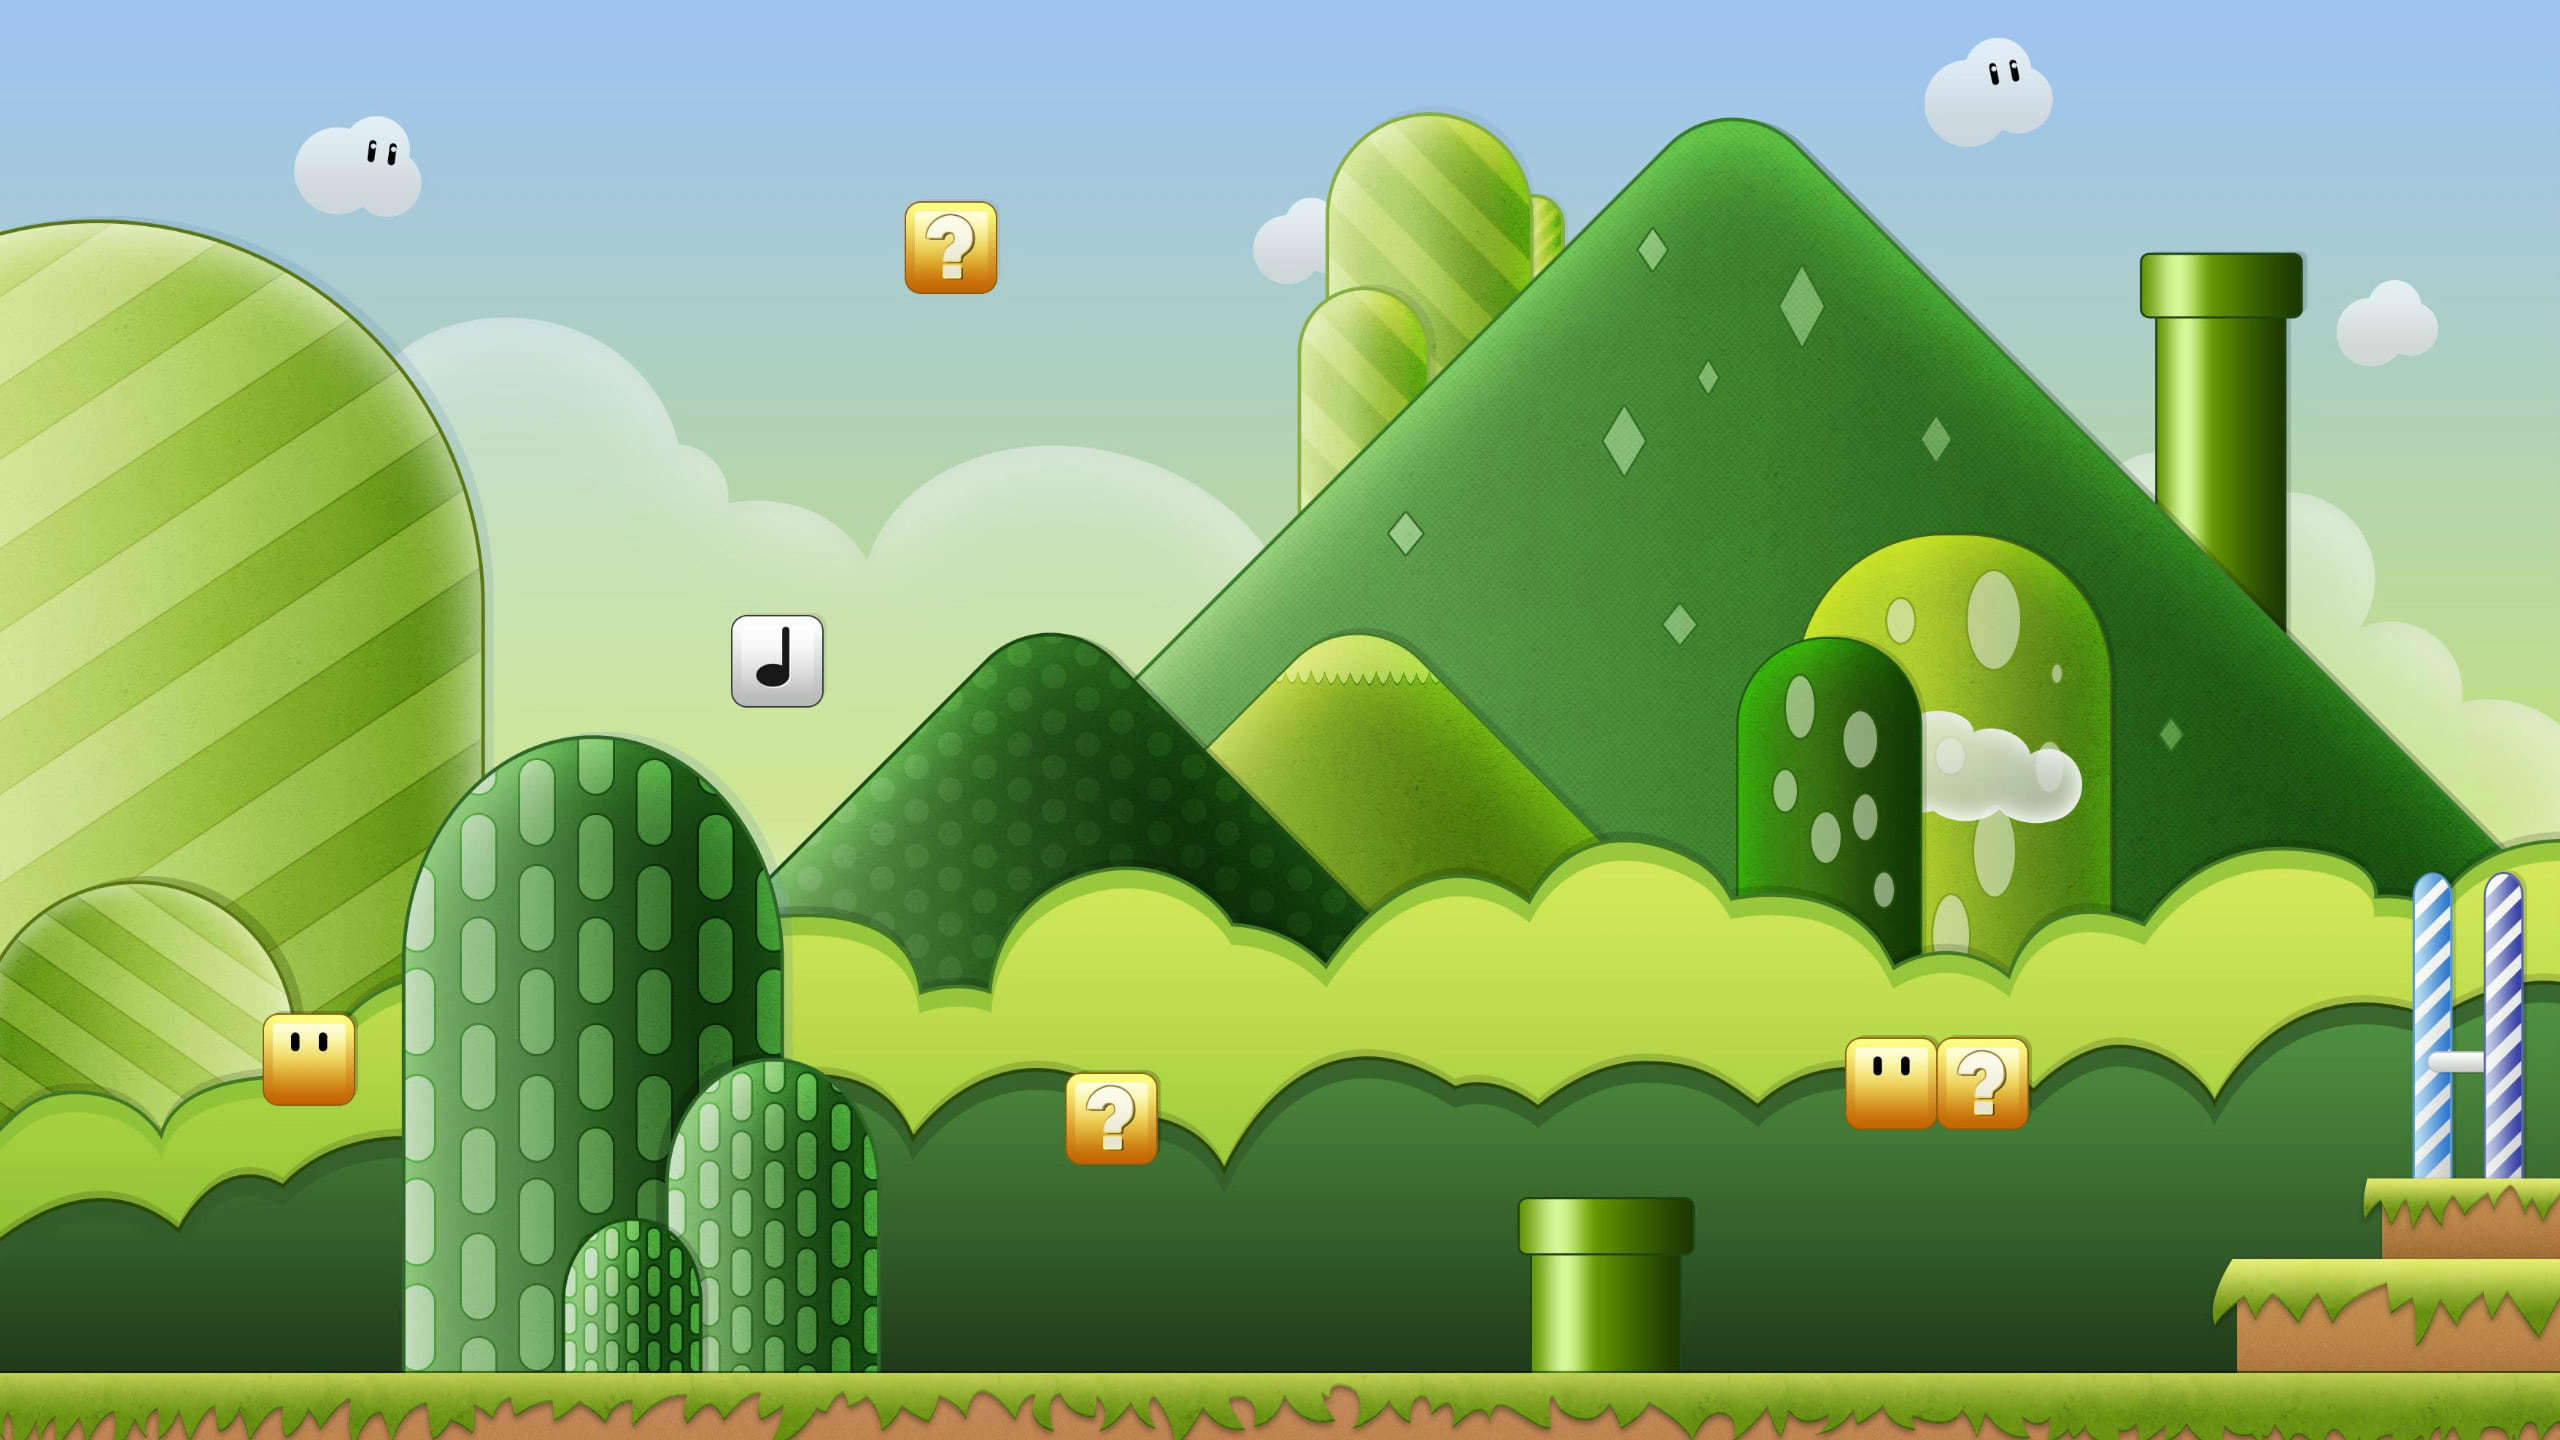 super mario bros background wqhd 1440p wallpaper